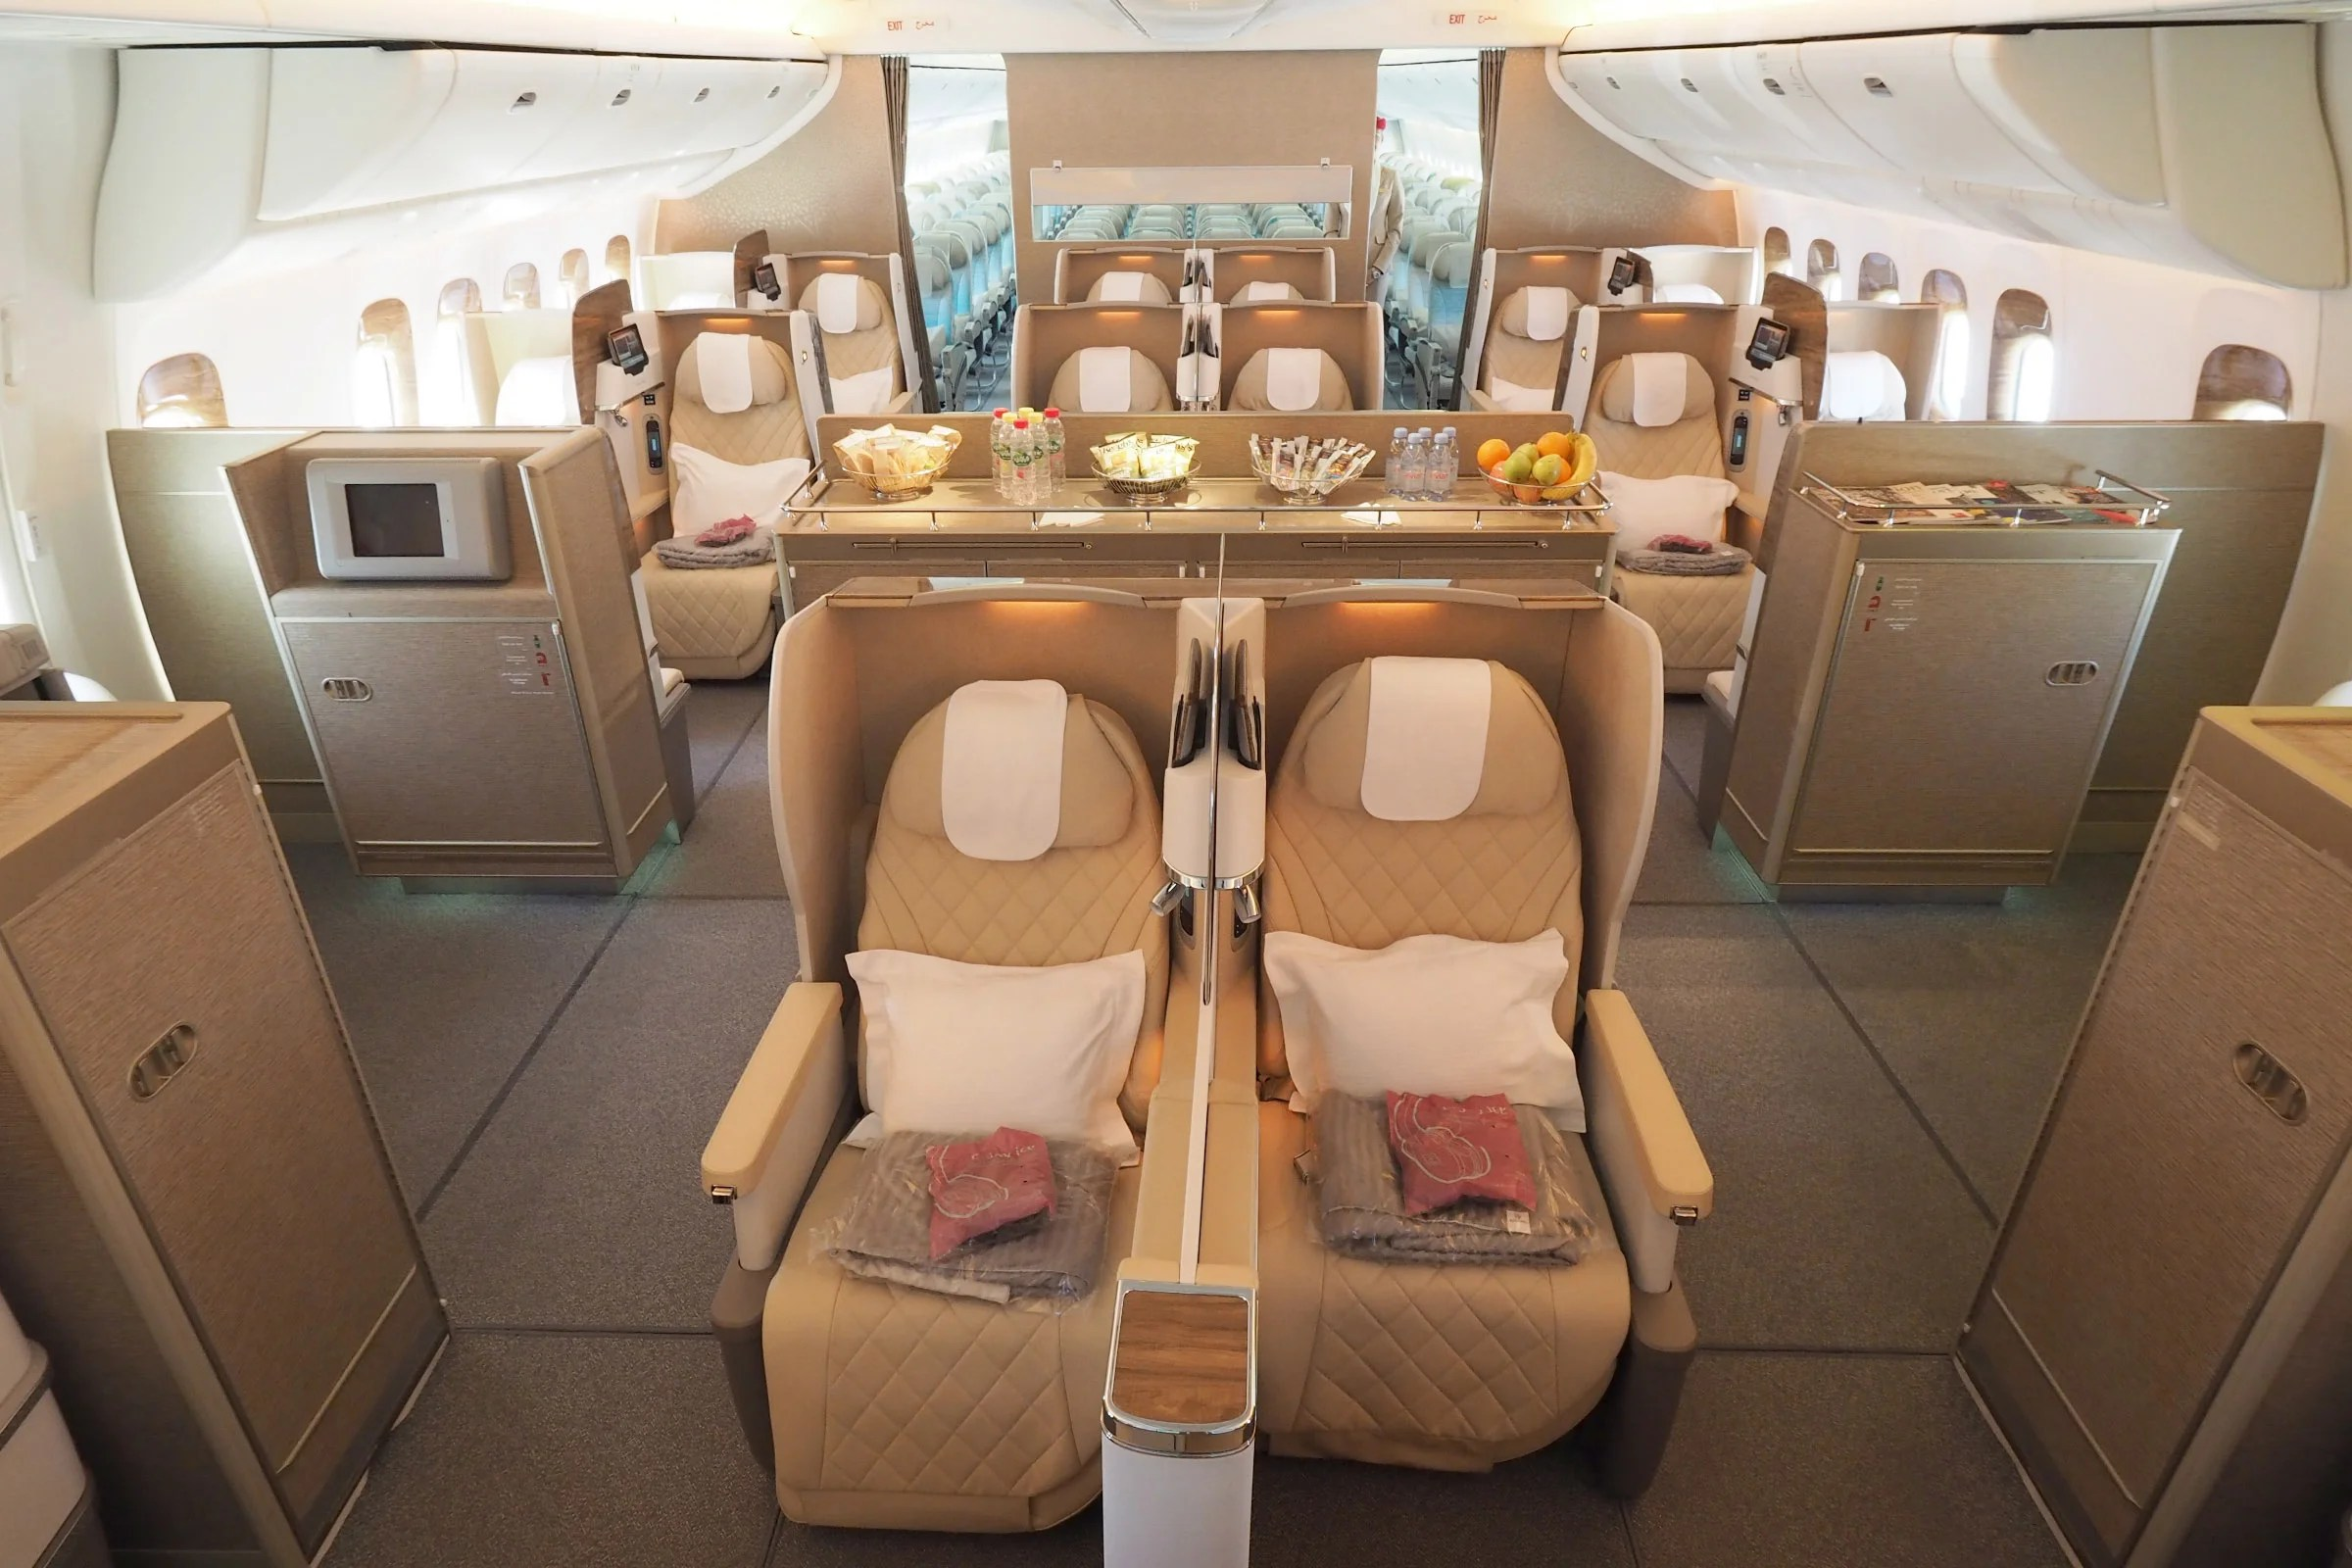 Astounding Check Out Emirates First 777 With The New Biz Class Seats Ocoug Best Dining Table And Chair Ideas Images Ocougorg